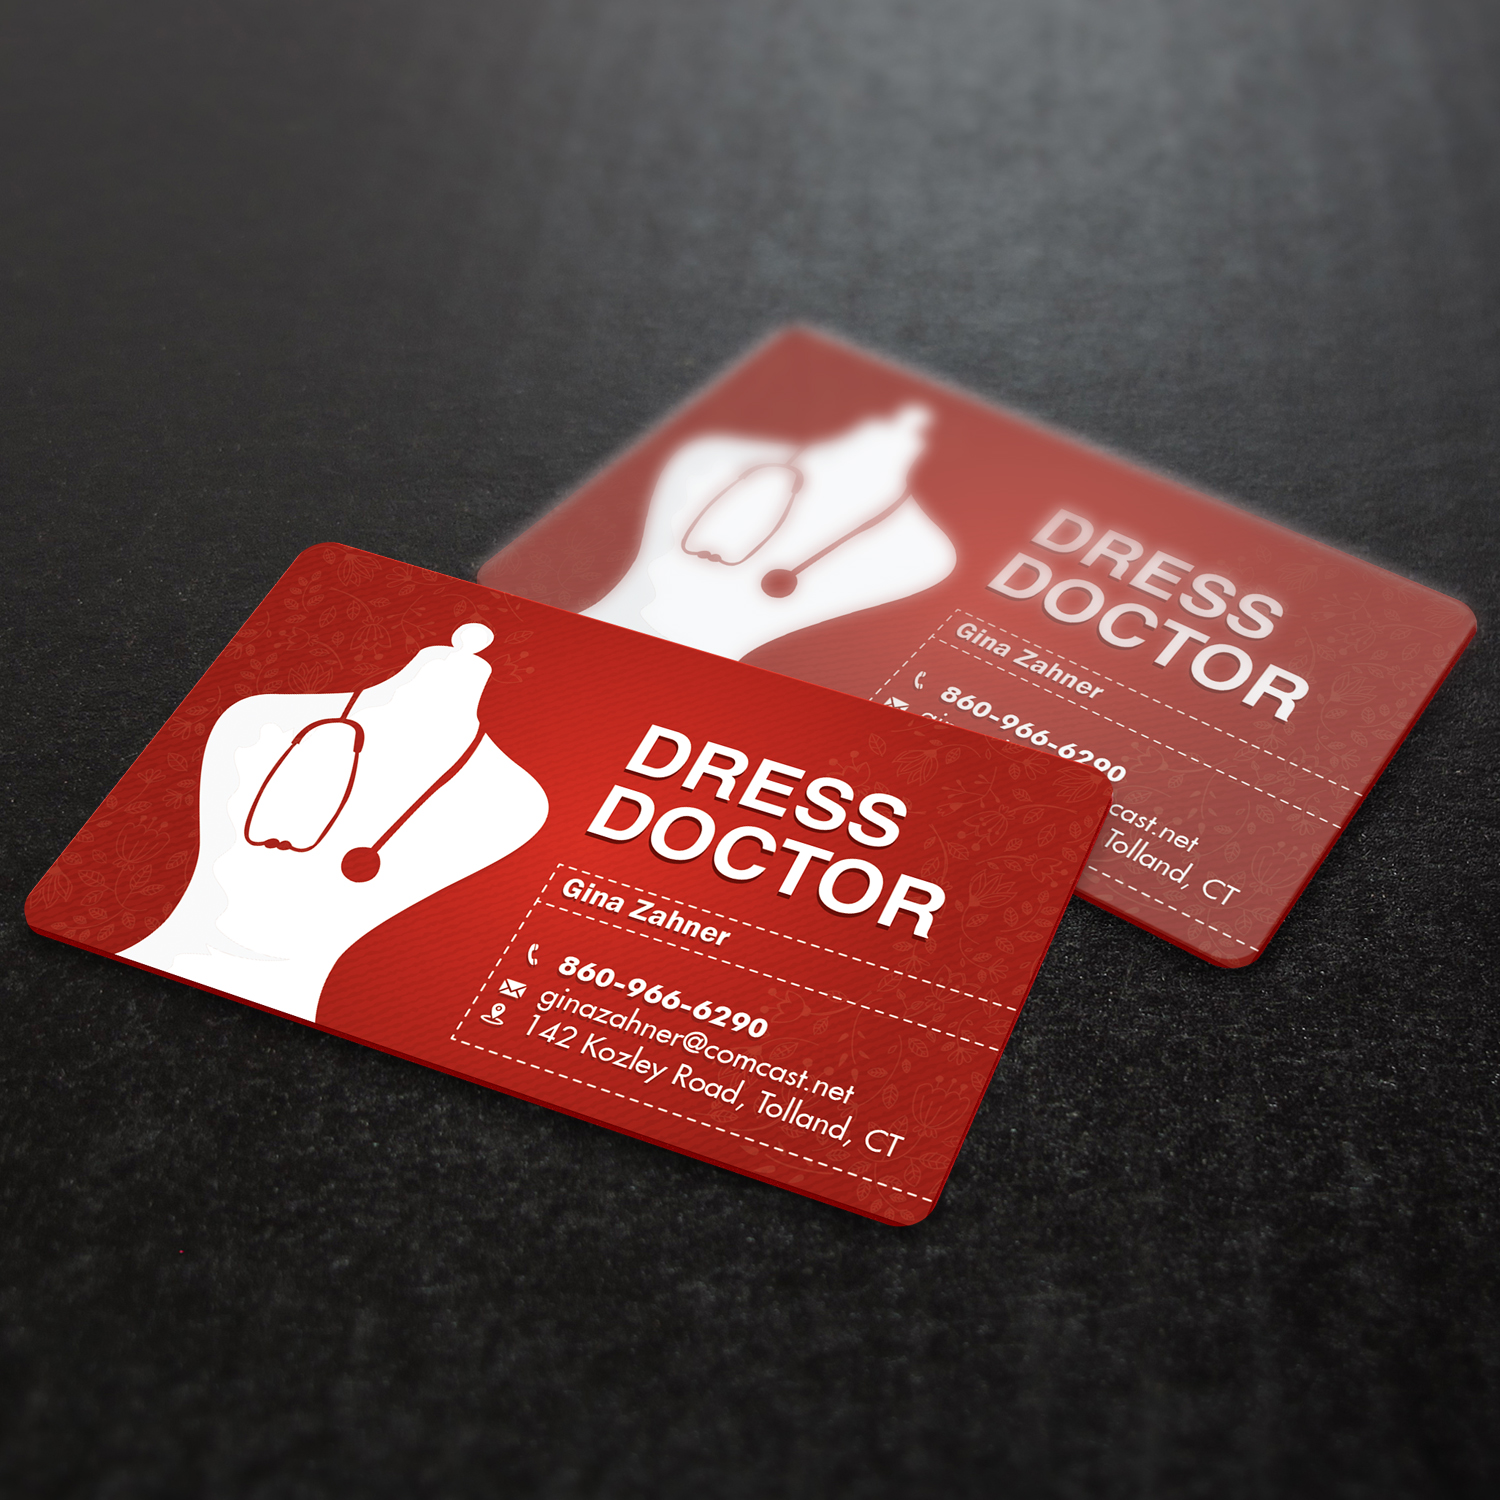 Bold modern professional service business card design for dress bold modern professional service business card design for dress doctor in united states design 10035592 reheart Gallery